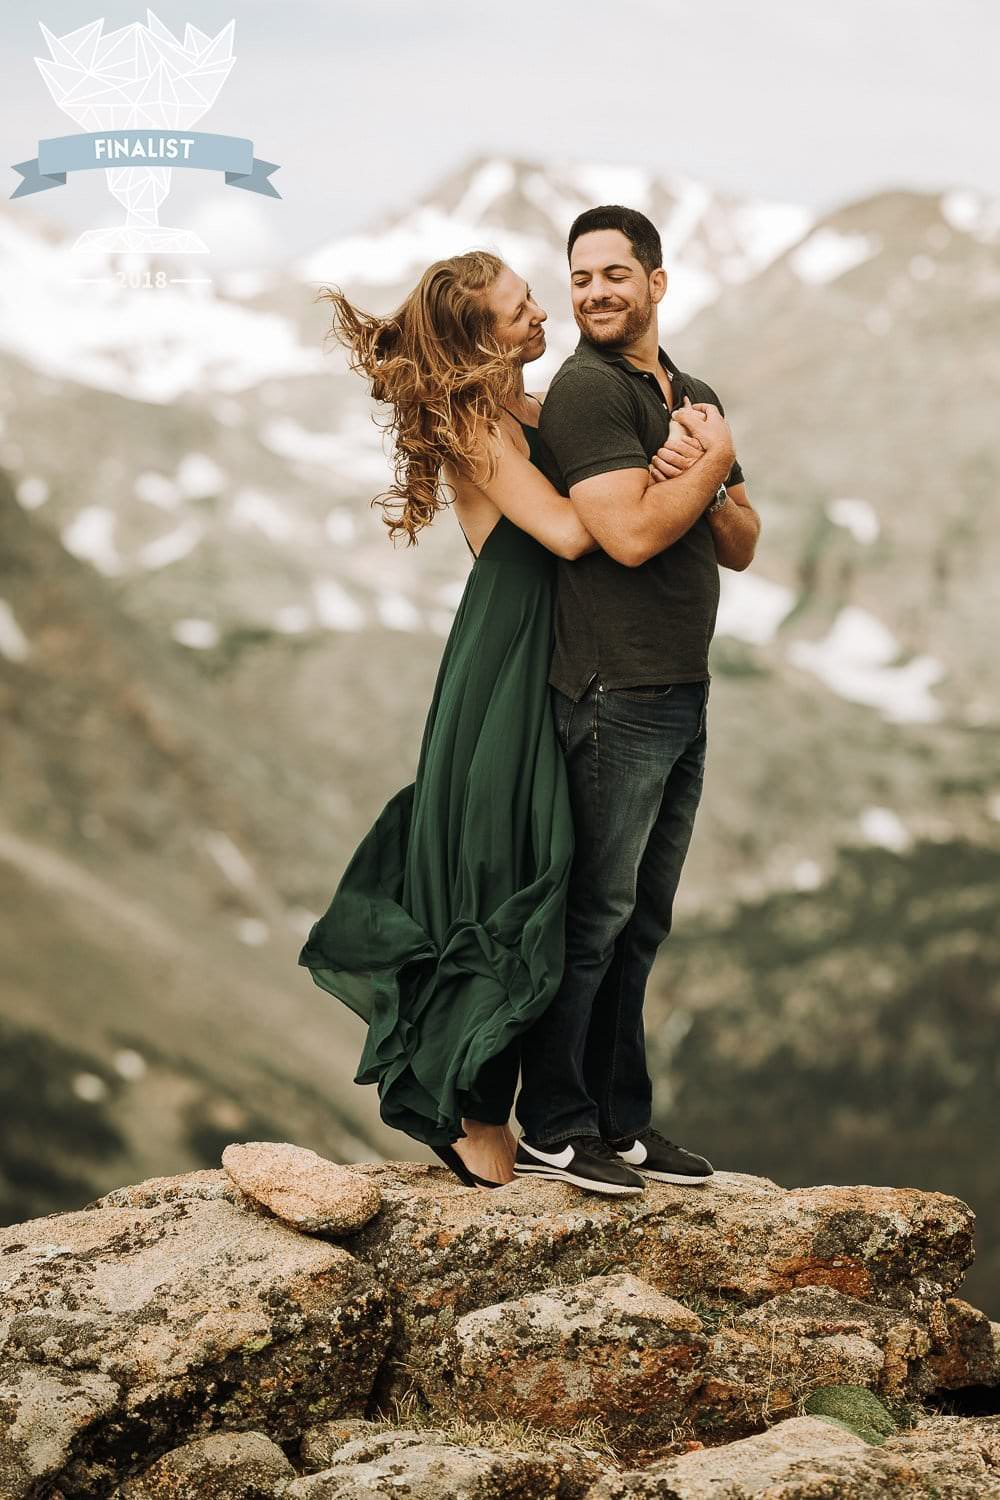 TRAVEL | ROCKY MOUNTAIN ELOPEMENT PHOTOGRAPHER | ELOPEMENT + INTIMATE WEDDING PHOTOGRAPHER | JUSTYNA E BUTLER PHOTOGRAPHY | ROCKY MOUNTAIN NATIONAL PARK ELOPEMENT PHOTOGRAPHER | COLORADO MOUNTAIN ADVENTUROUS ELOPEMENT PHOTOGRAPHER I COLORADO WINTER ELOPEMENT PHOTOGRAPHER |INTIMATE WEDDING + ADVENTUROUS ELOPEMENTS | ADVENTURE WEDDING PHOTOGRAPHER| SELF-SOLEMNIZING COLORADO ELOPEMENT PHOTOGRAPHER